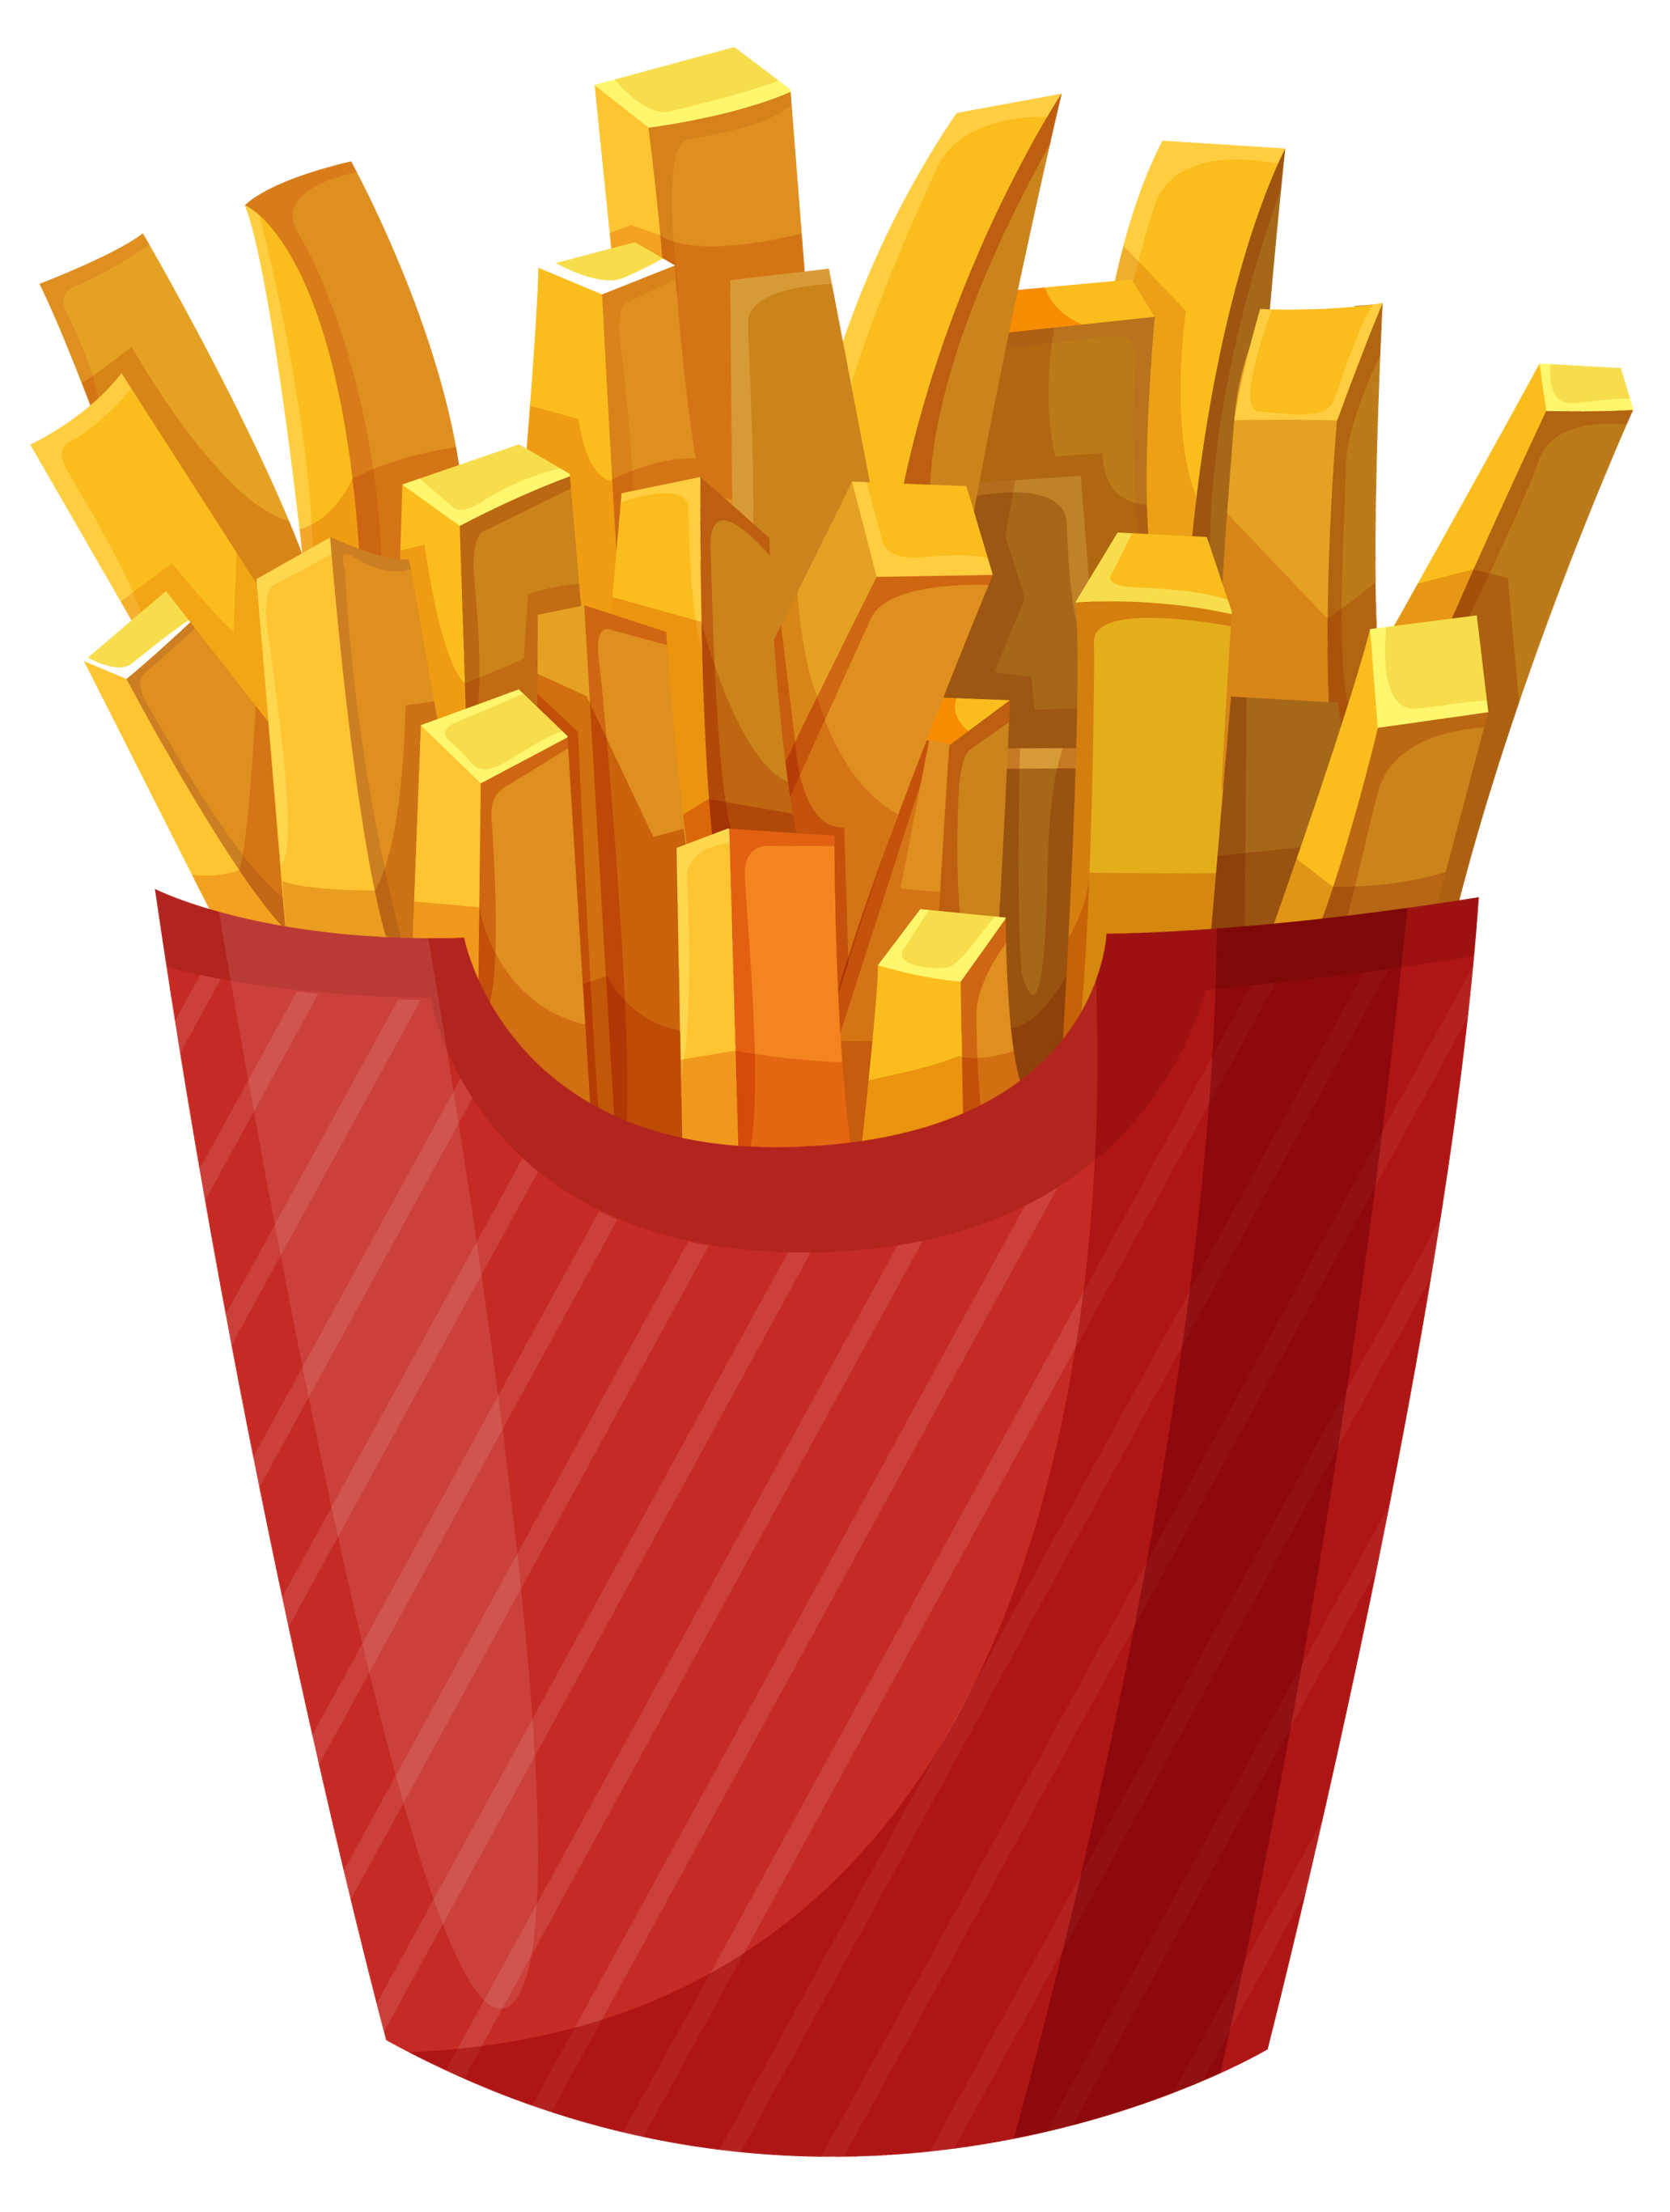 Fries clipart painting. Pin by charudeal on